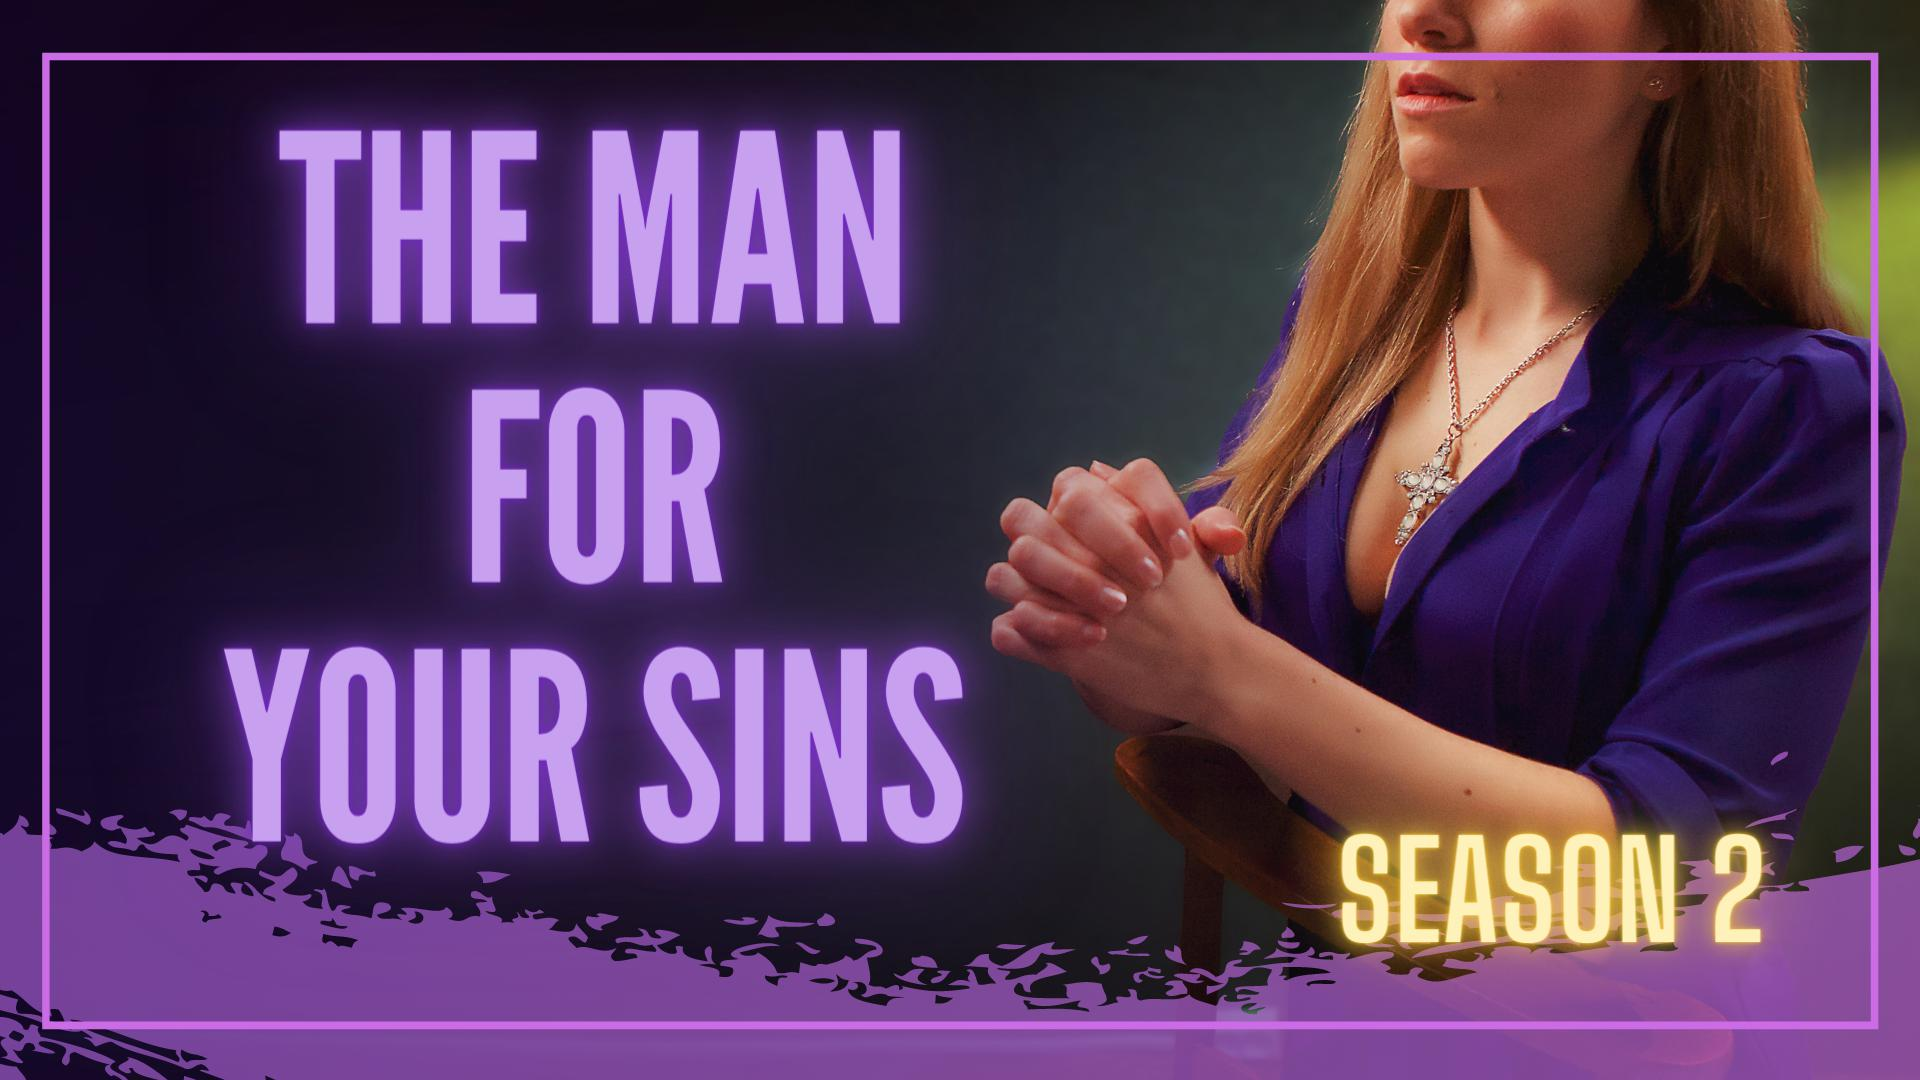 The Man for Your Sins